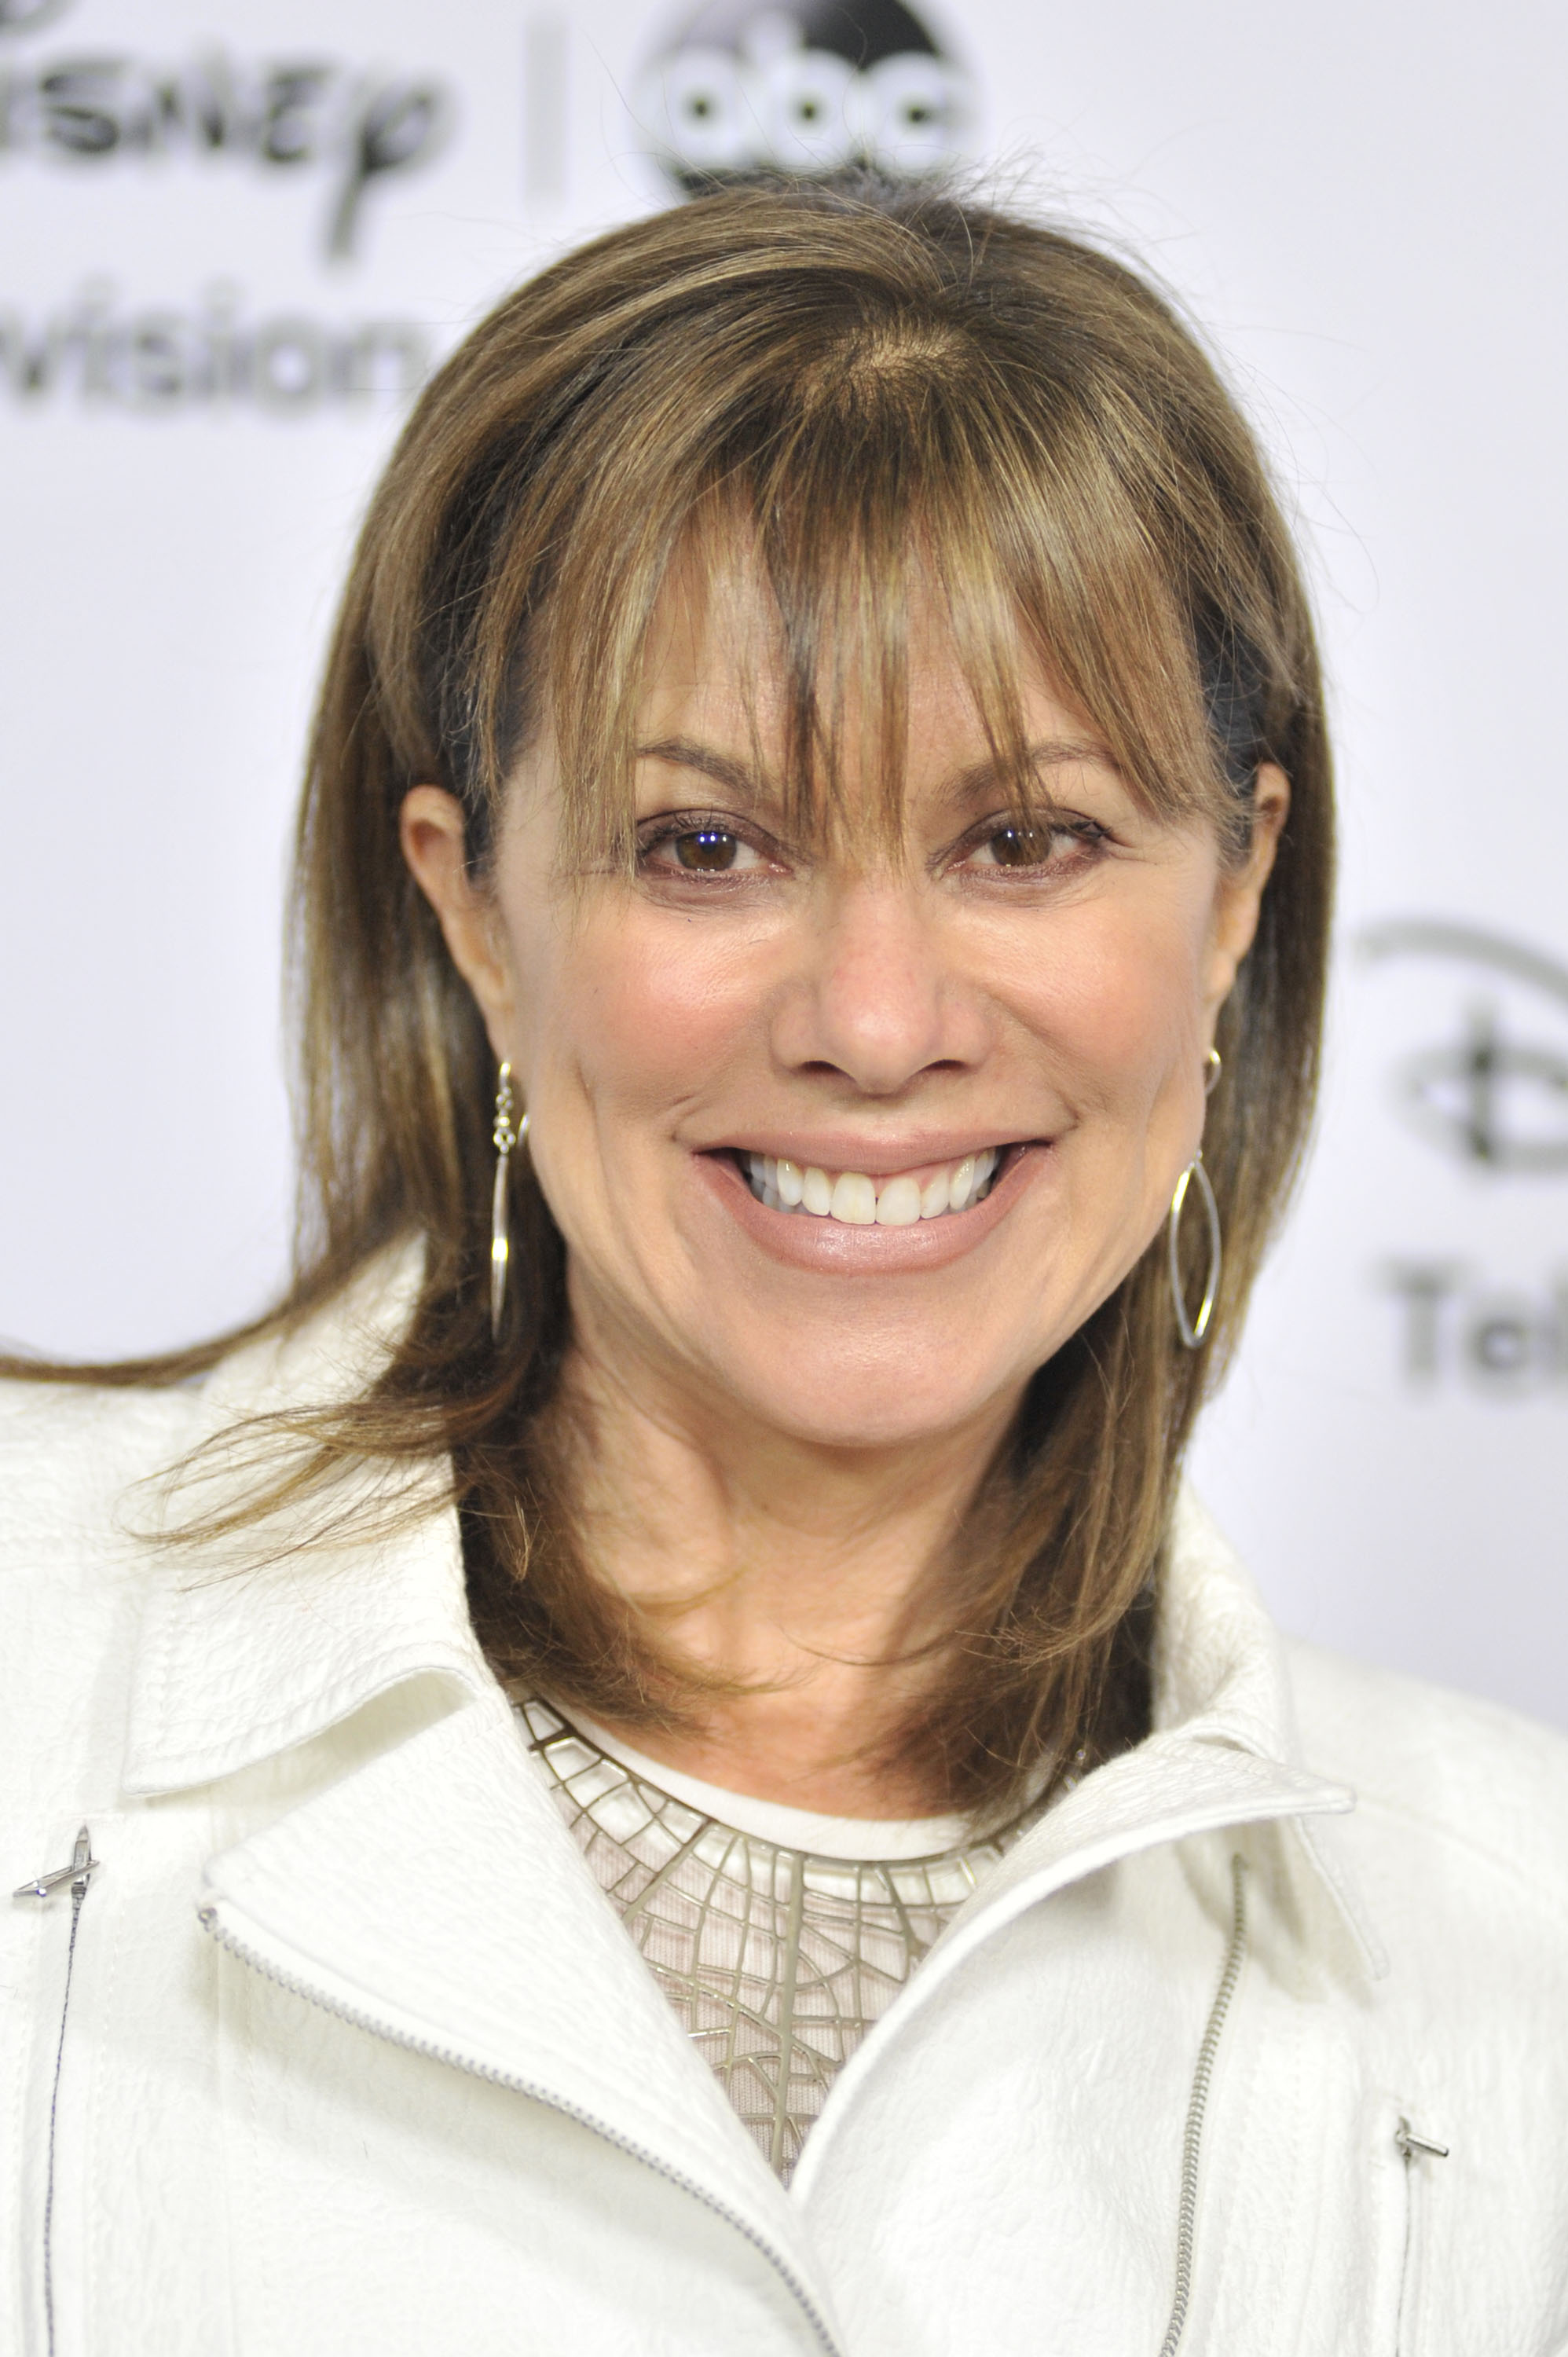 Fappening Nancy Lee Grahn  nudes (12 images), Snapchat, see through